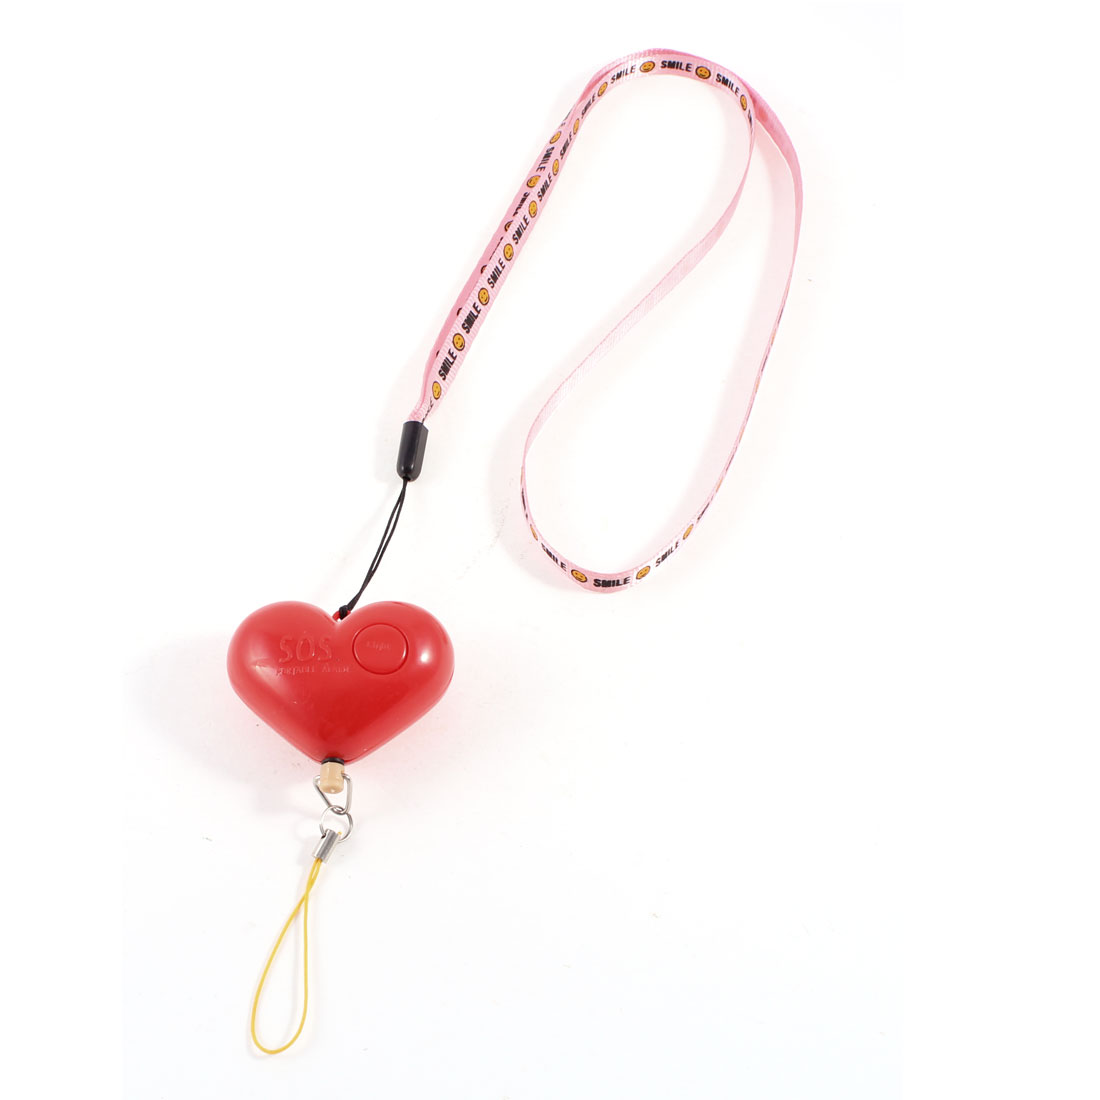 LED Light Neck Strap Plastic Heart Design Personal Self Protection Alarm Red